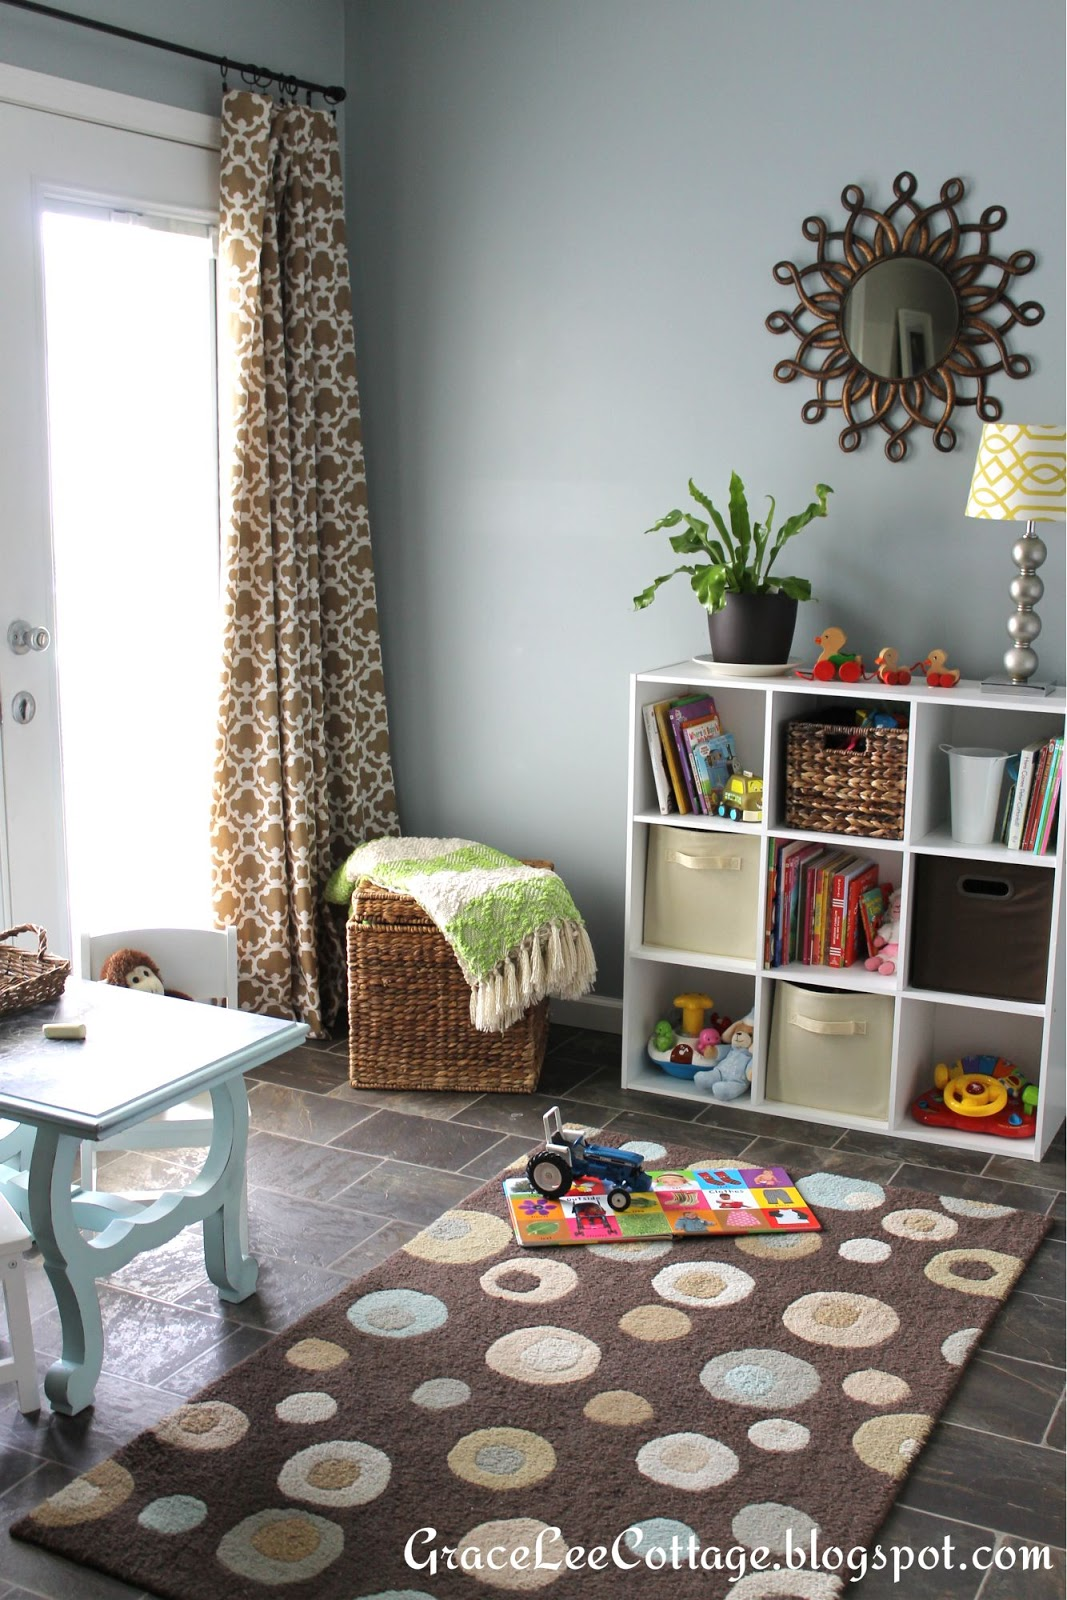 Grace Lee Cottage Switching Things Up Kid 39 S Playroom And Re Arranged Di